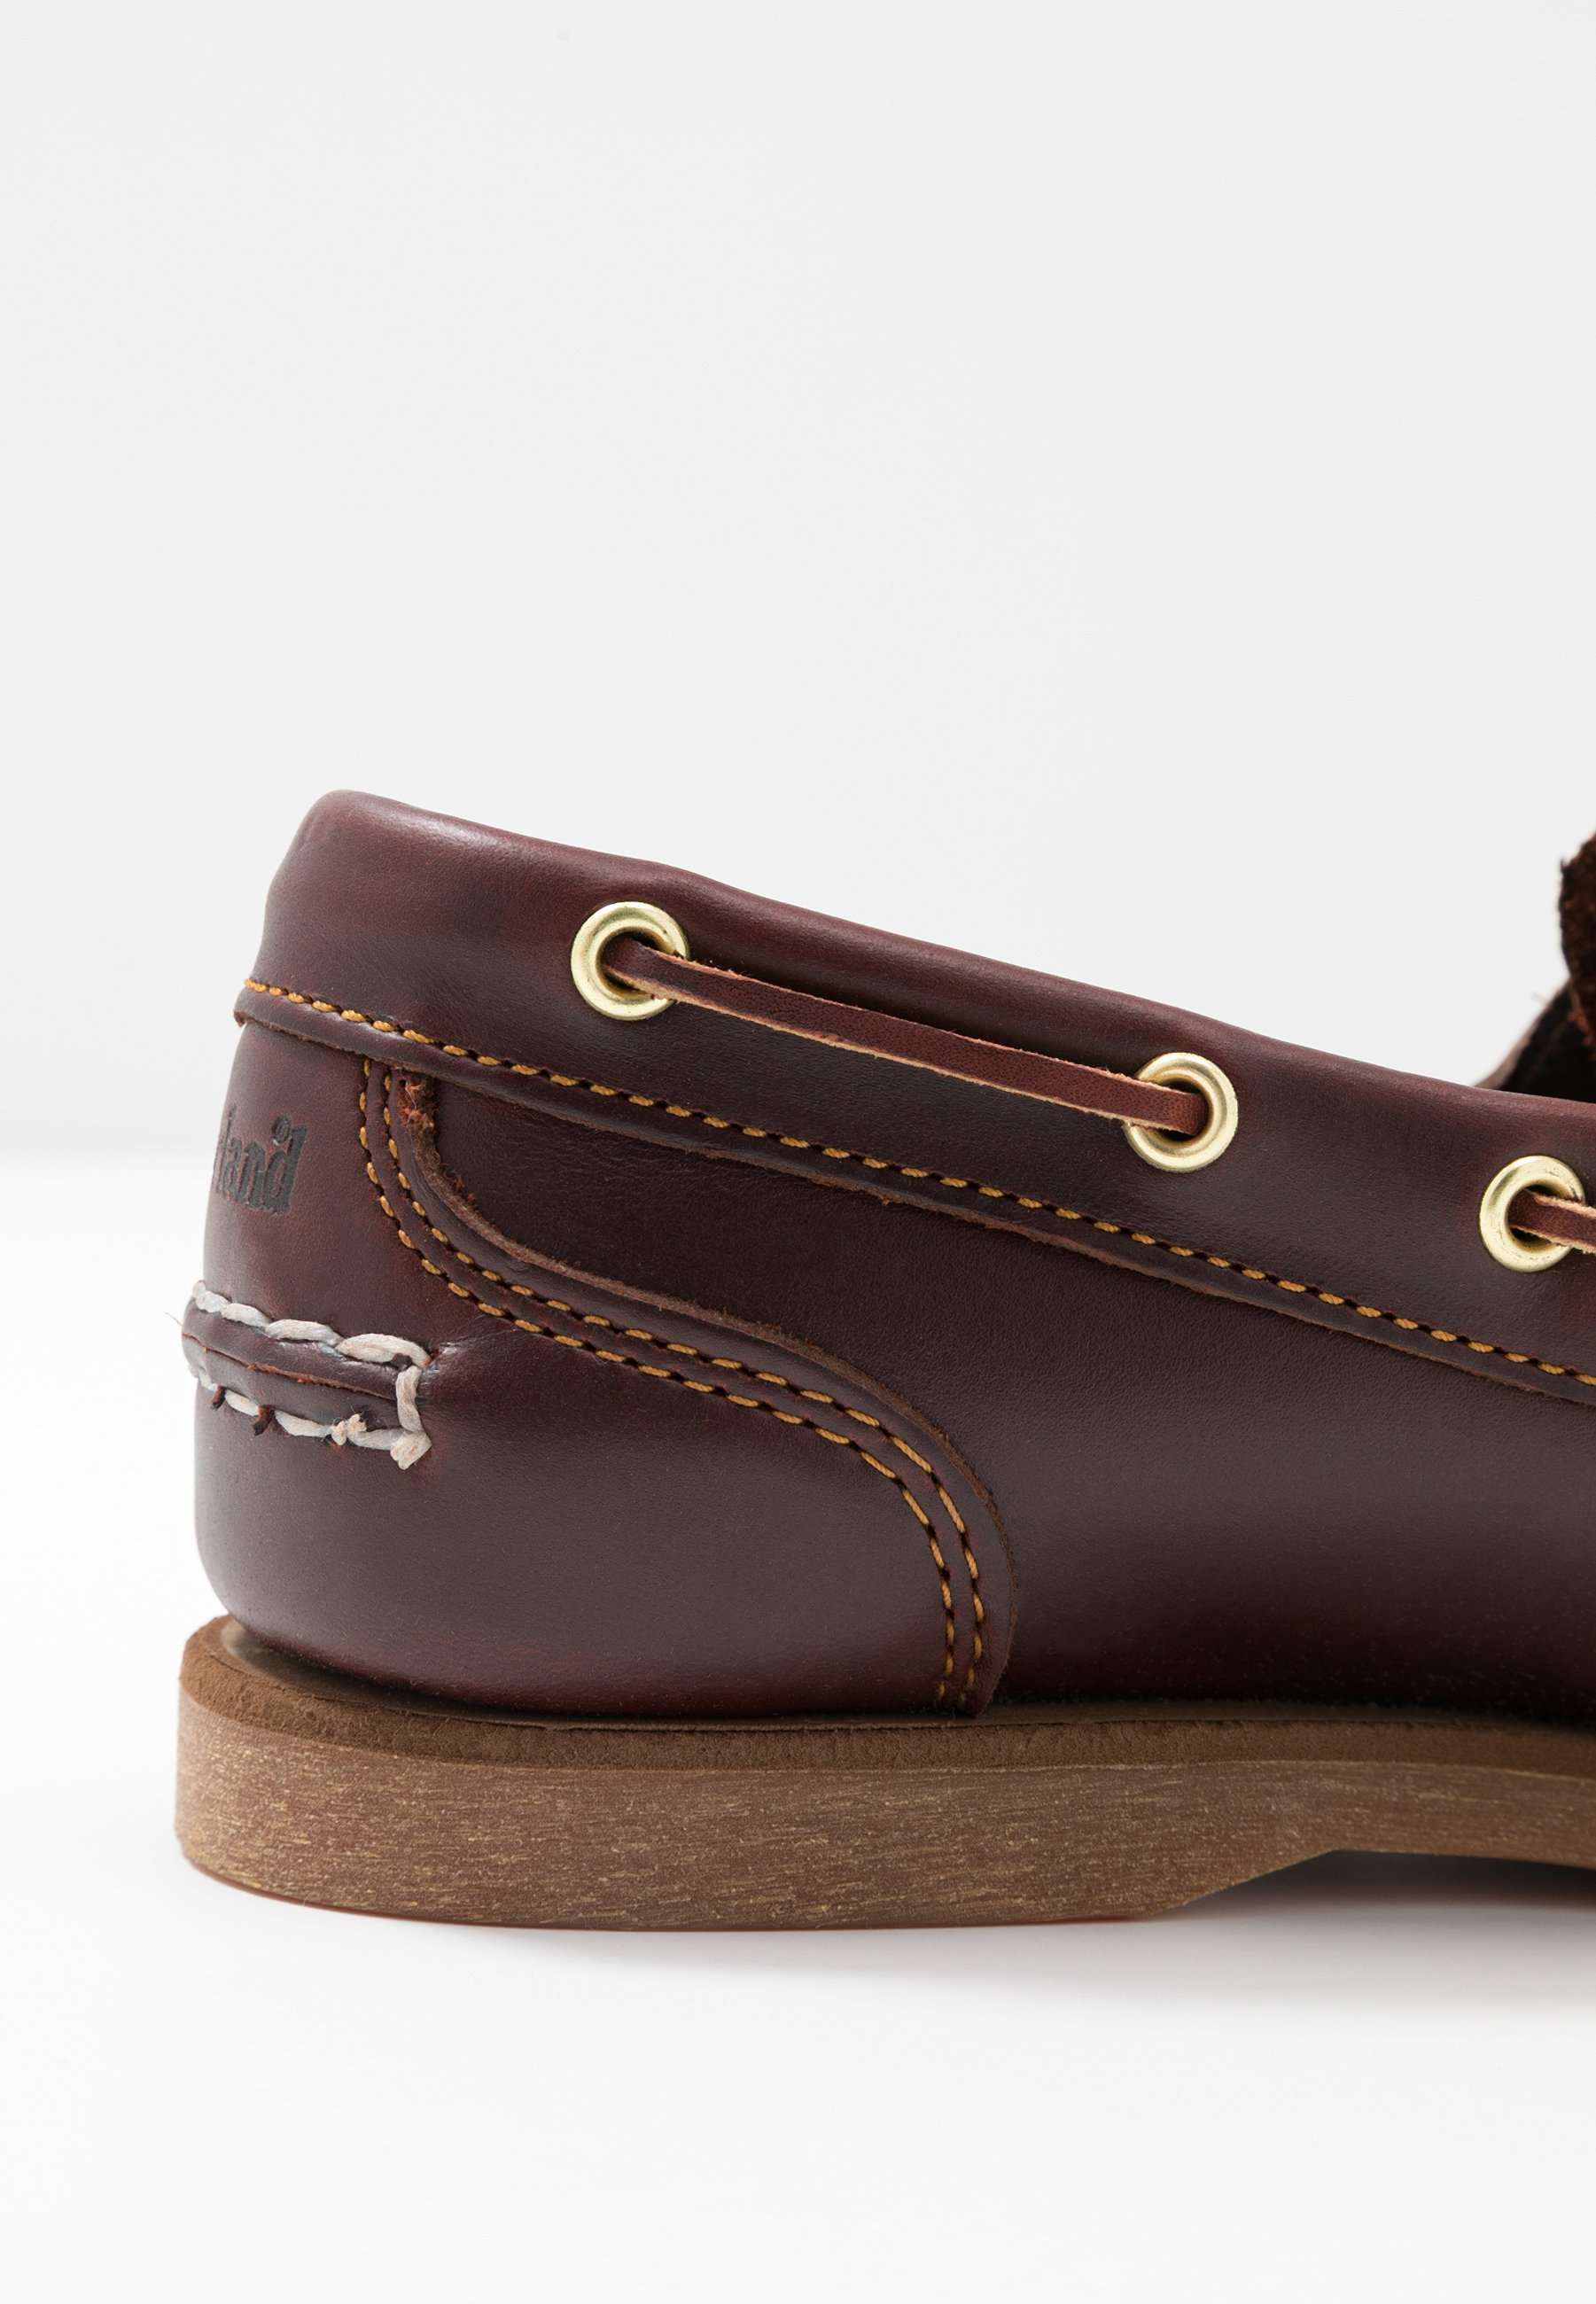 CLASSIC BOAT 2 EYE Bootsschuh burgundy